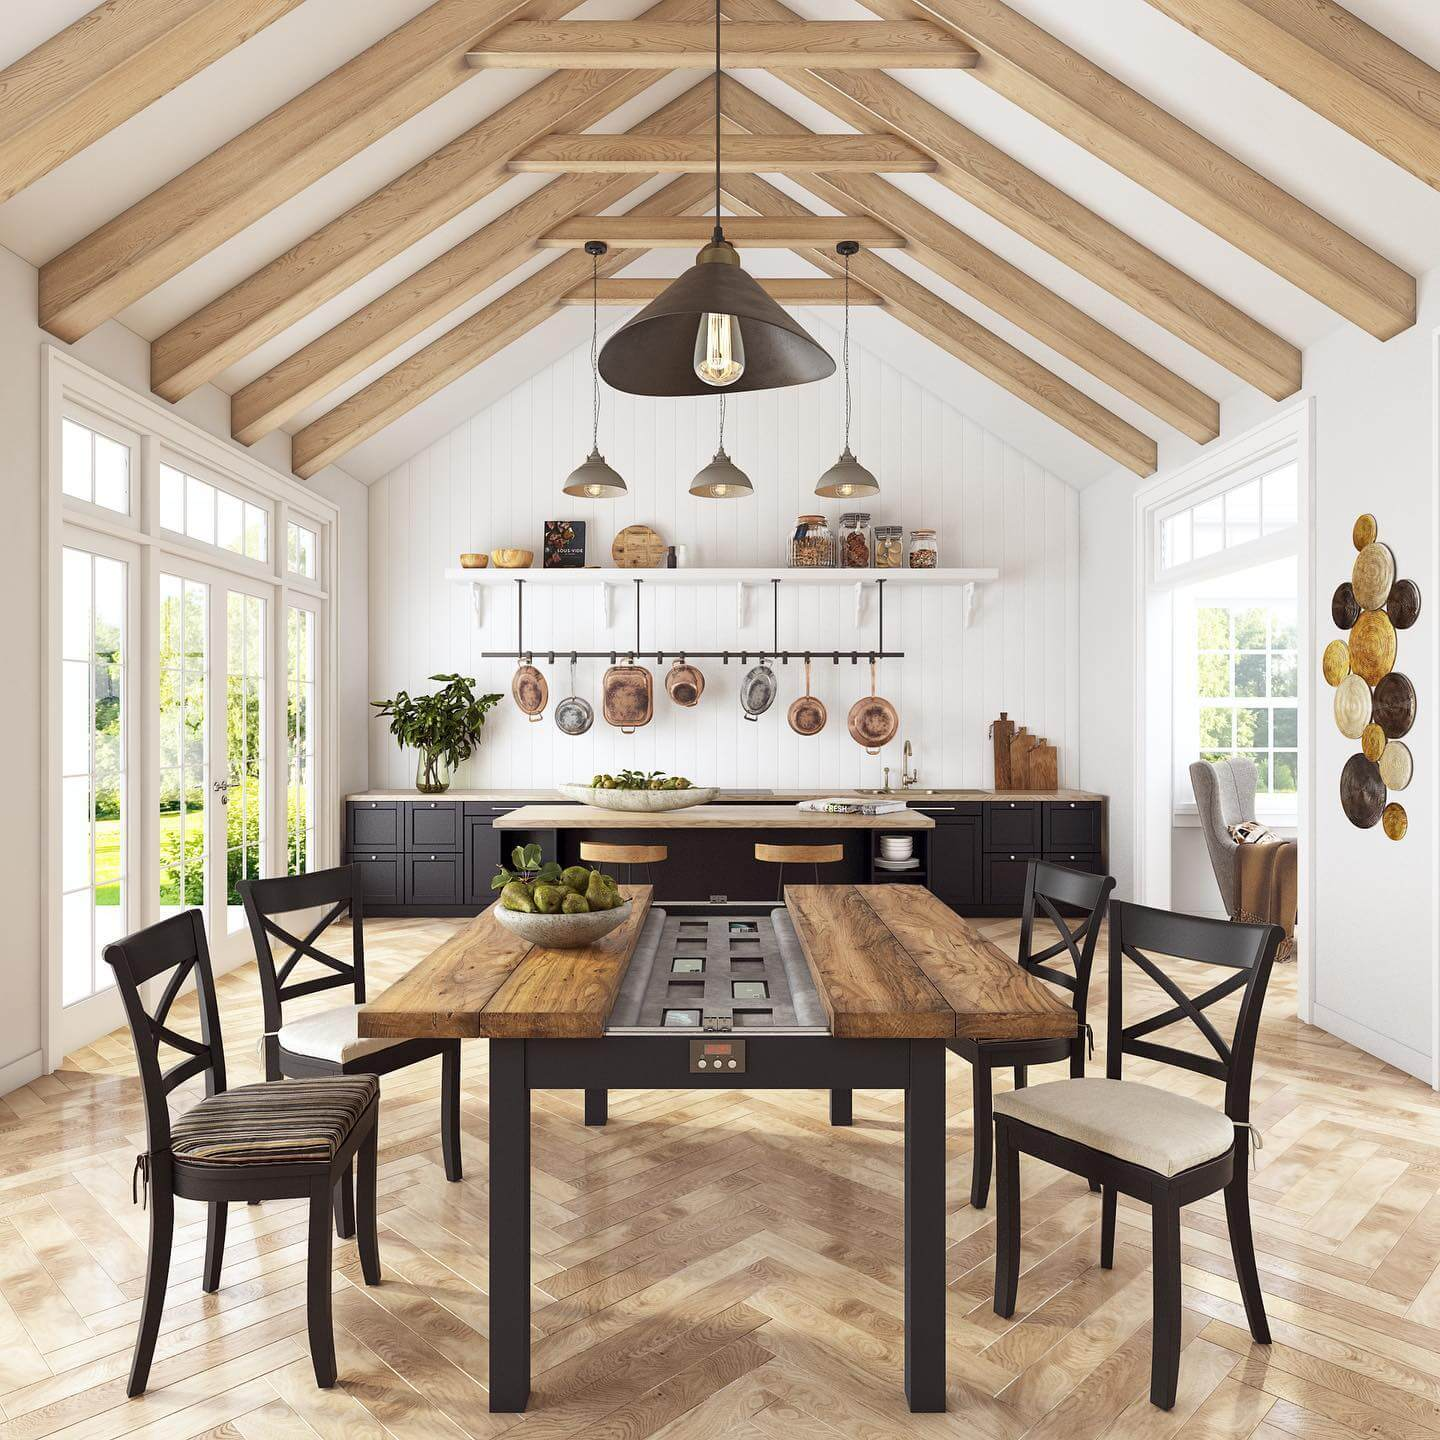 3D Visualization of a Spacious Kitchen